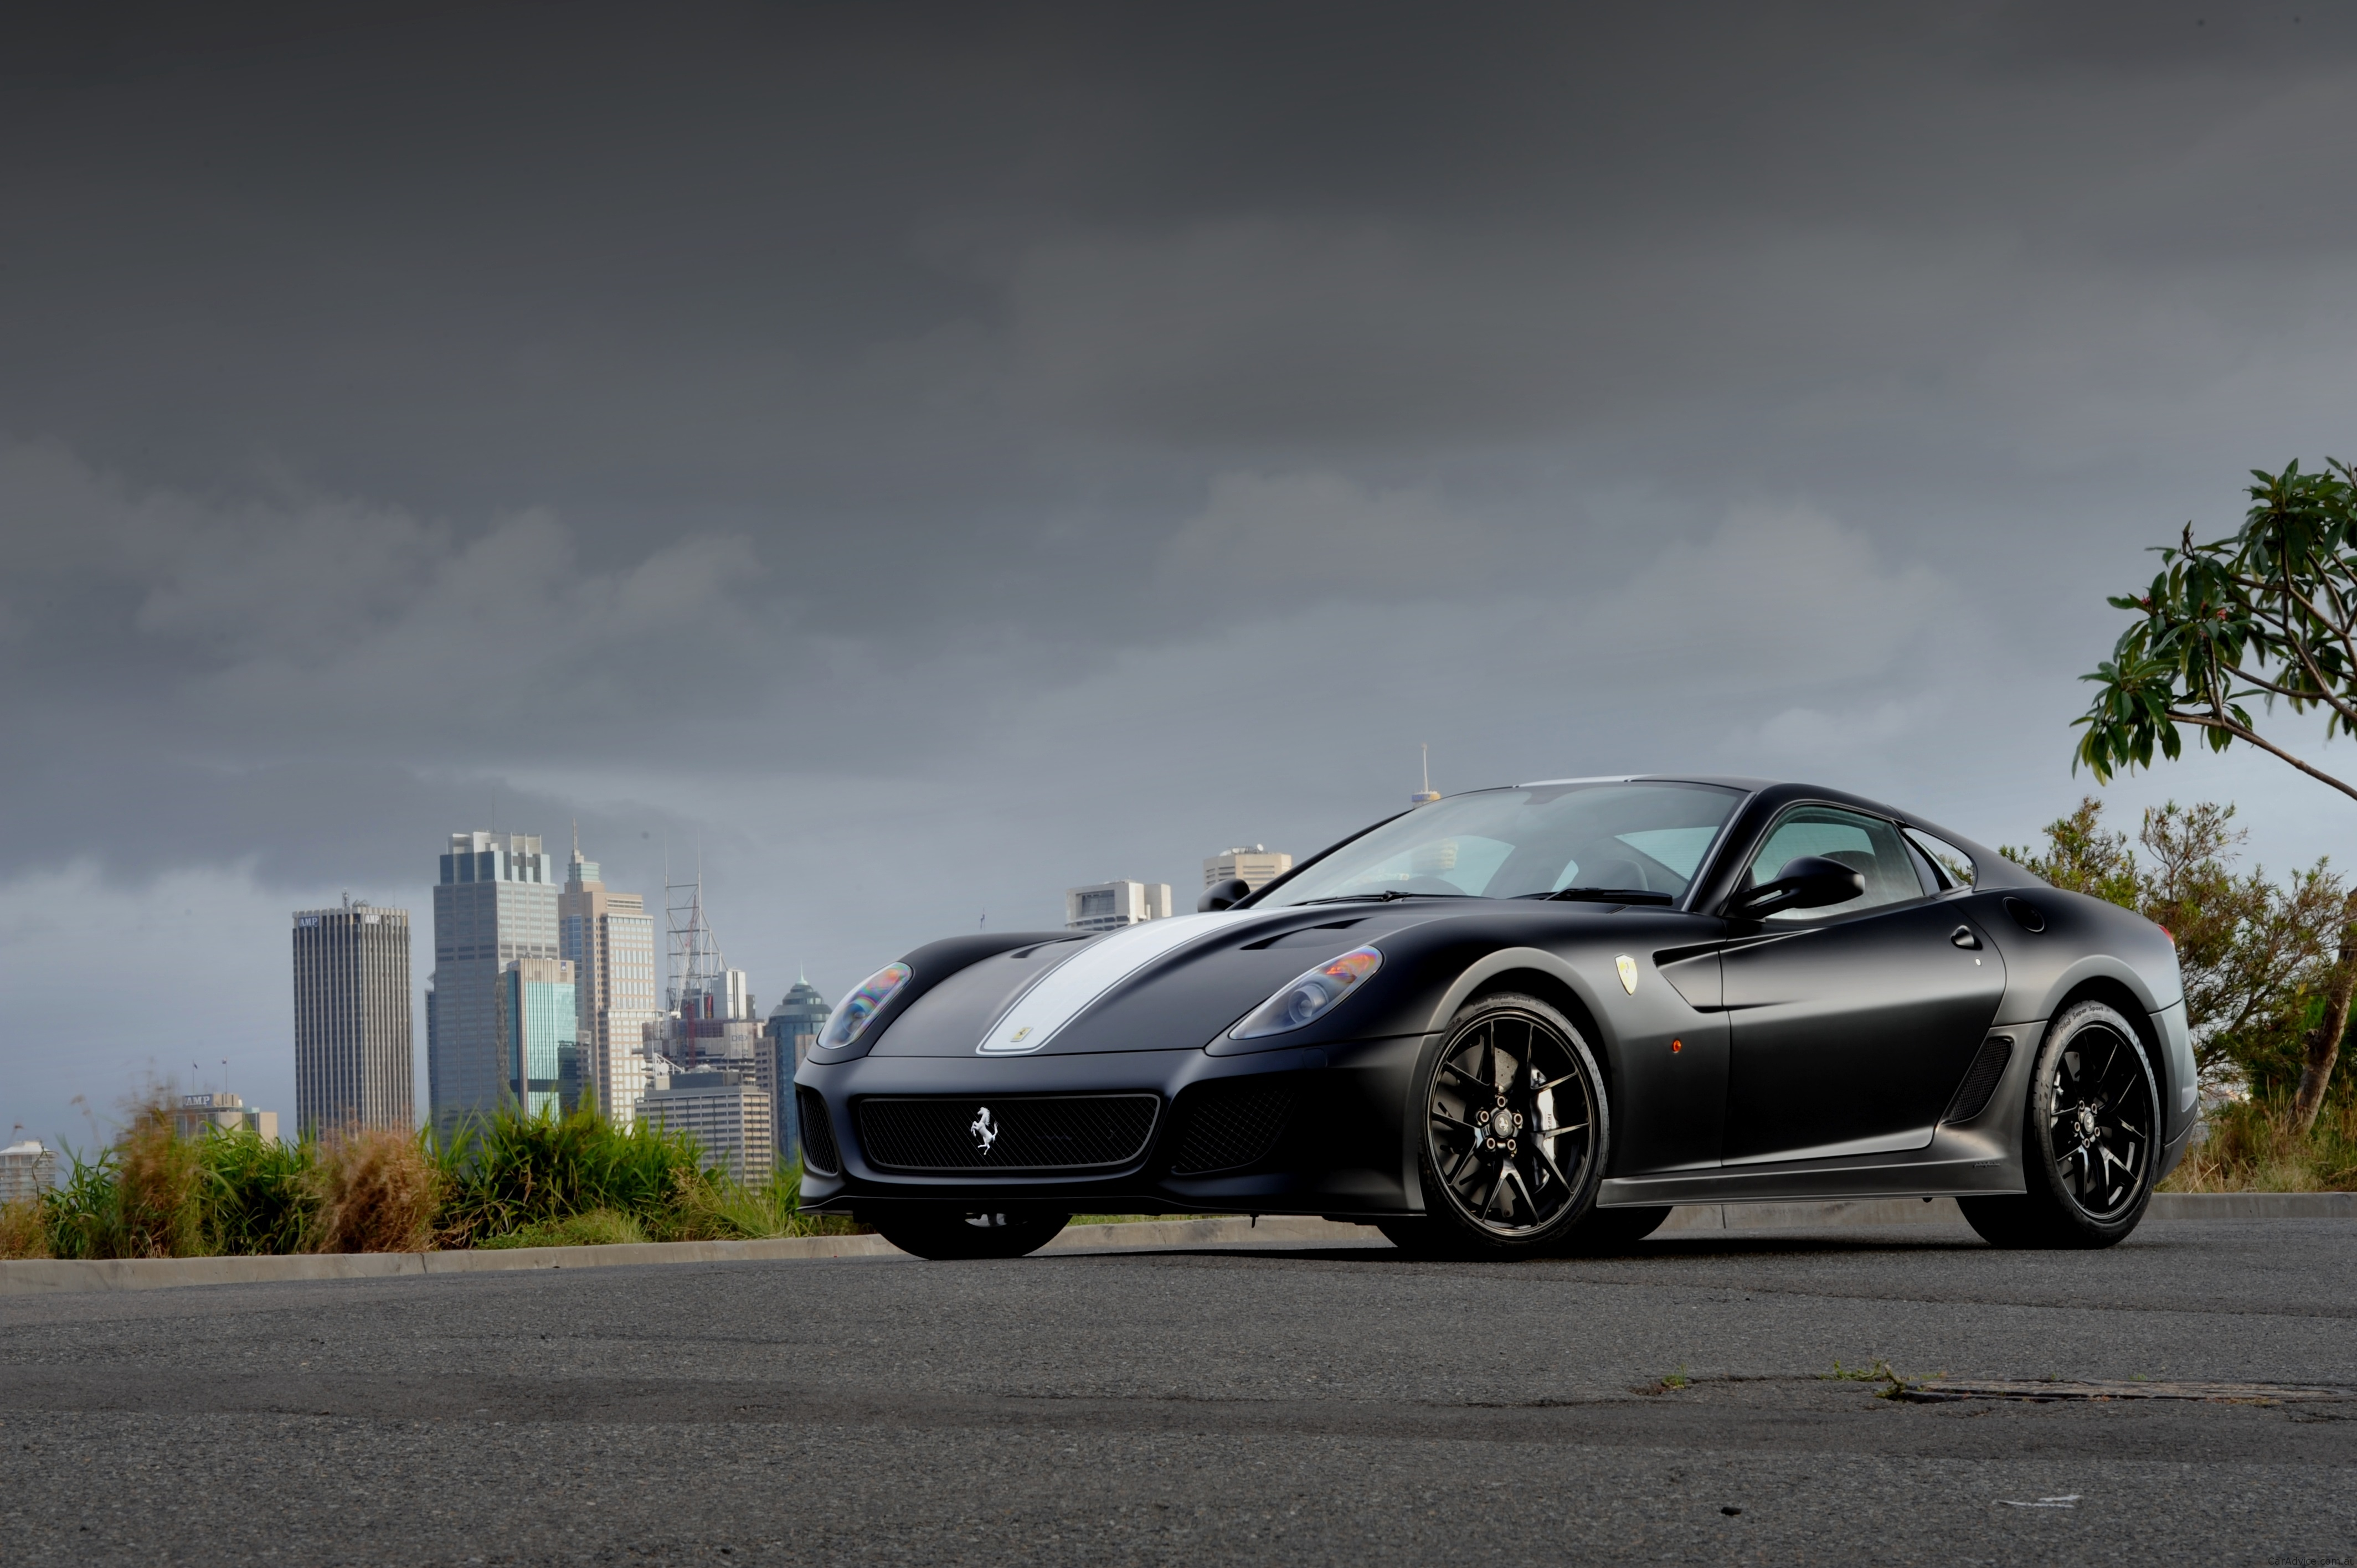 2011 Ferrari 599 Gto Arrives In Australia Photos 1 Of 12